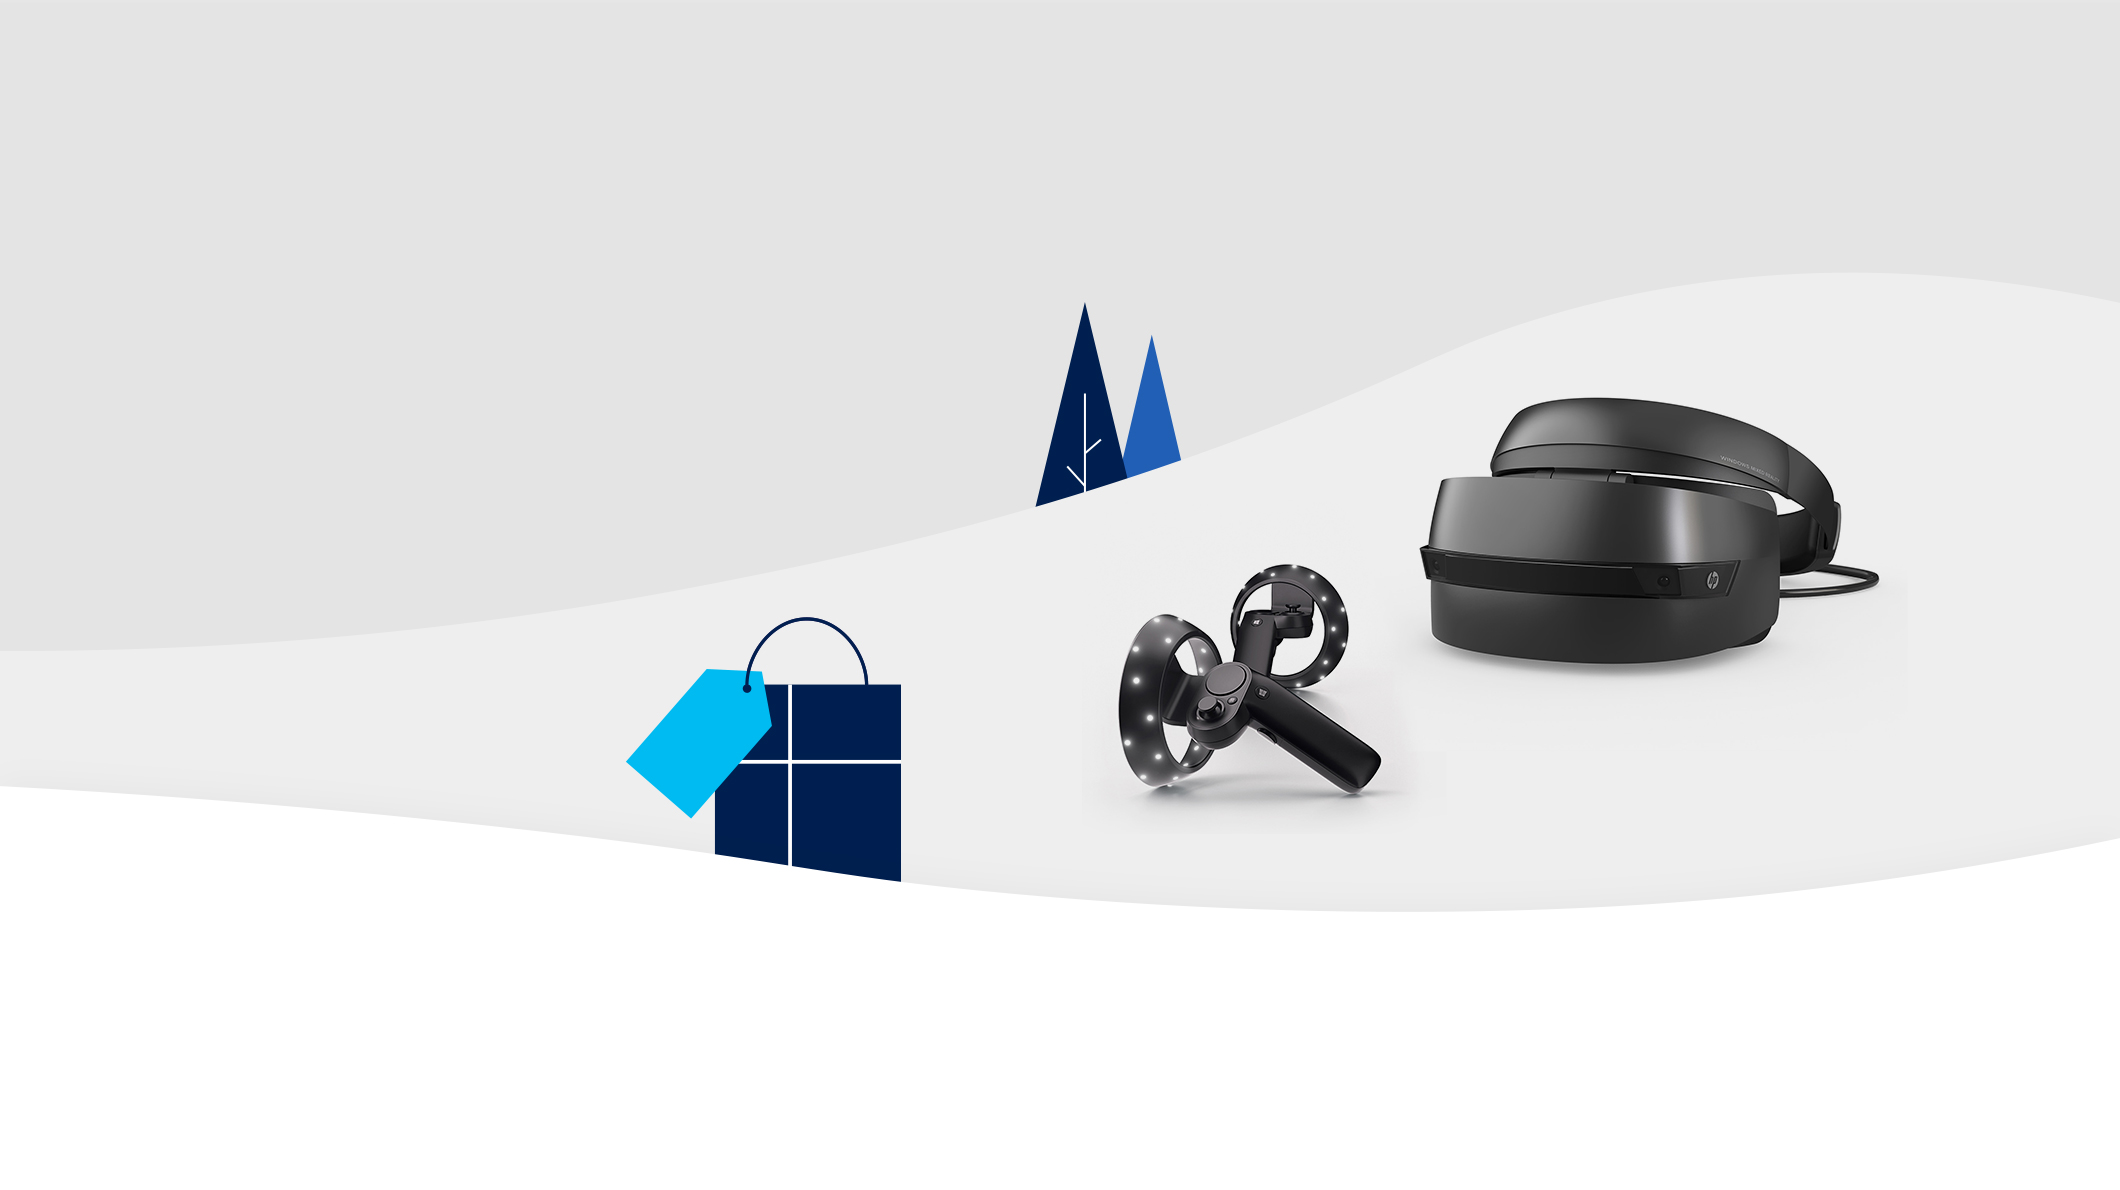 HP Windows Mixed Reality Headset with a Motion Controller in a winter scene